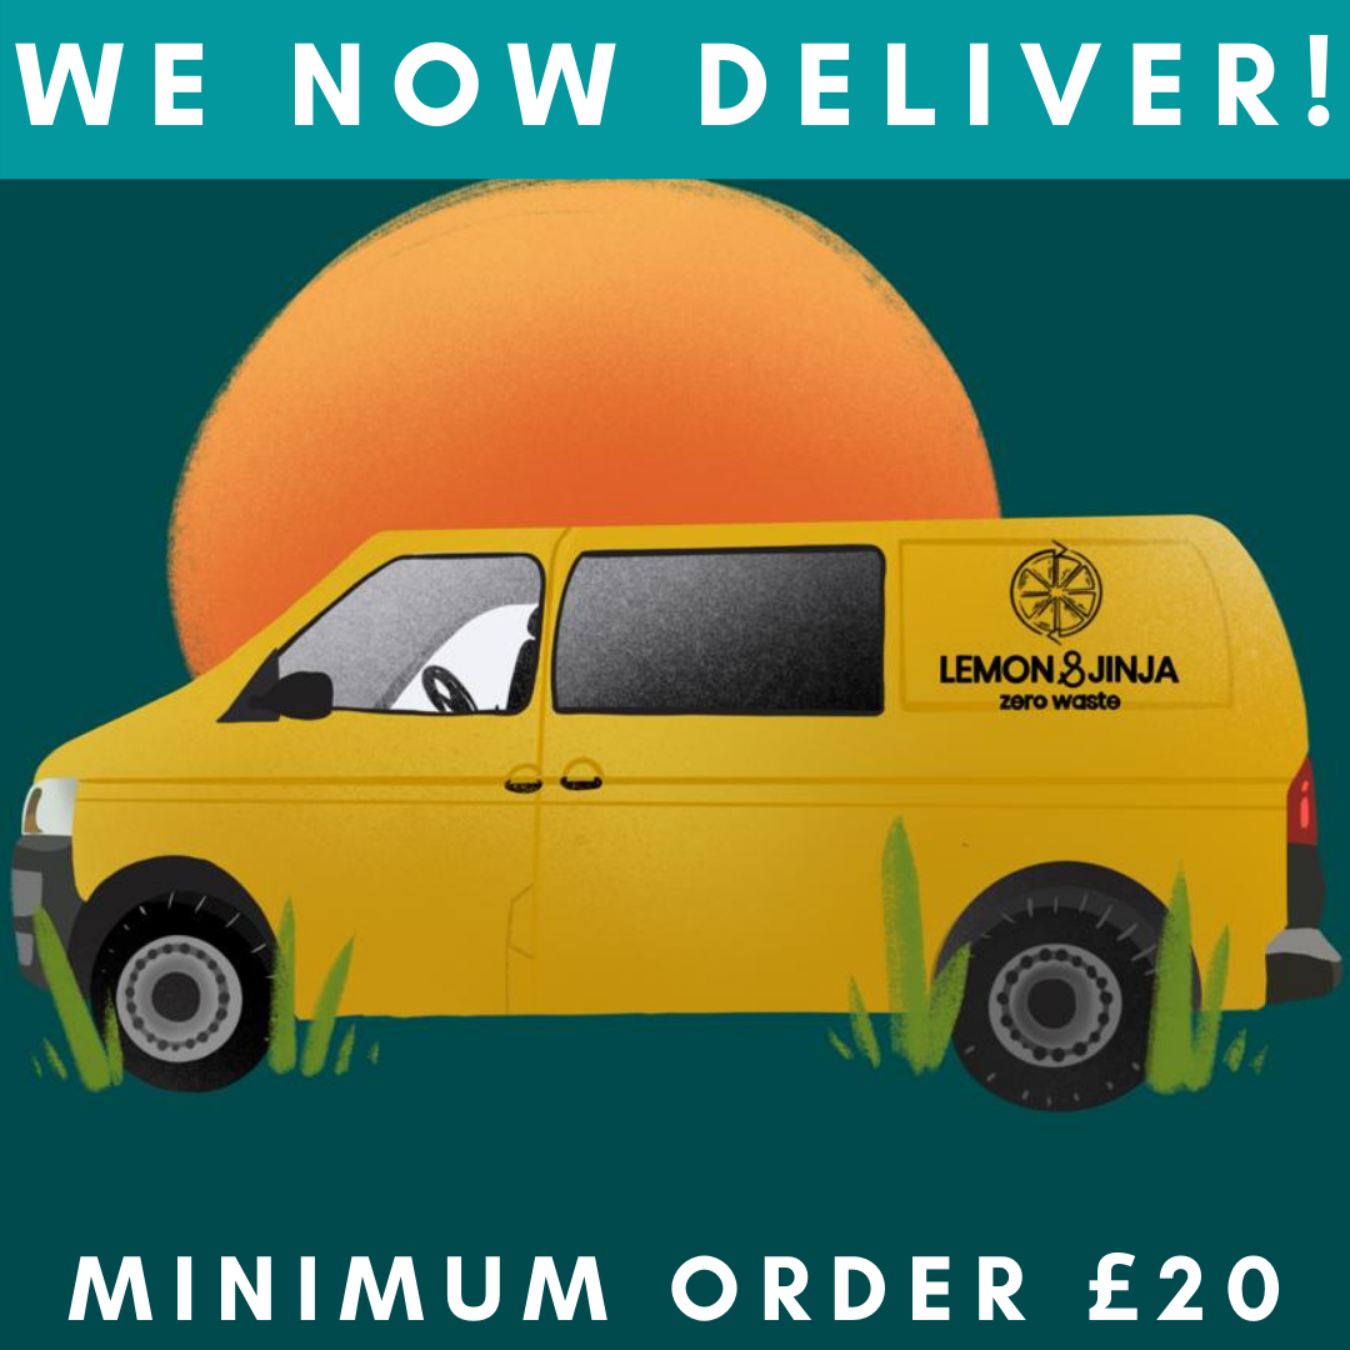 We now deliver!